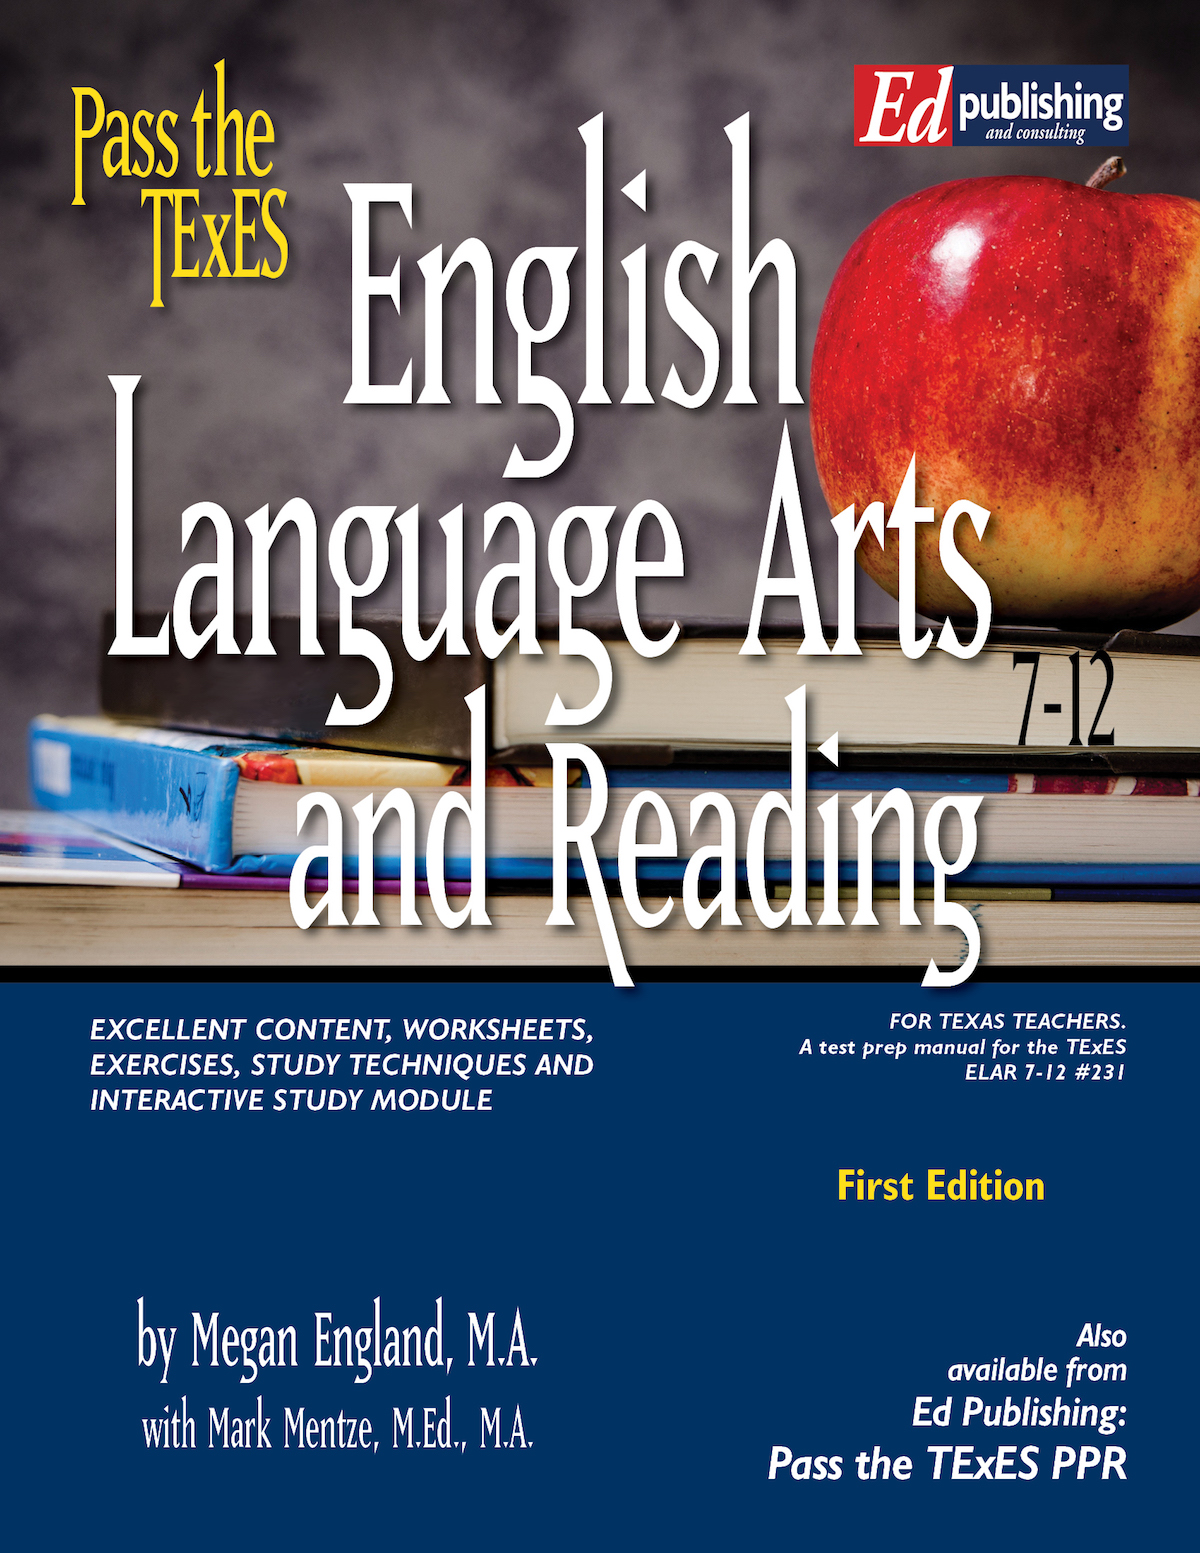 ELAR 7-12, 1st Ed Ebook Online Module for #231 [ONLINE MODULE ]